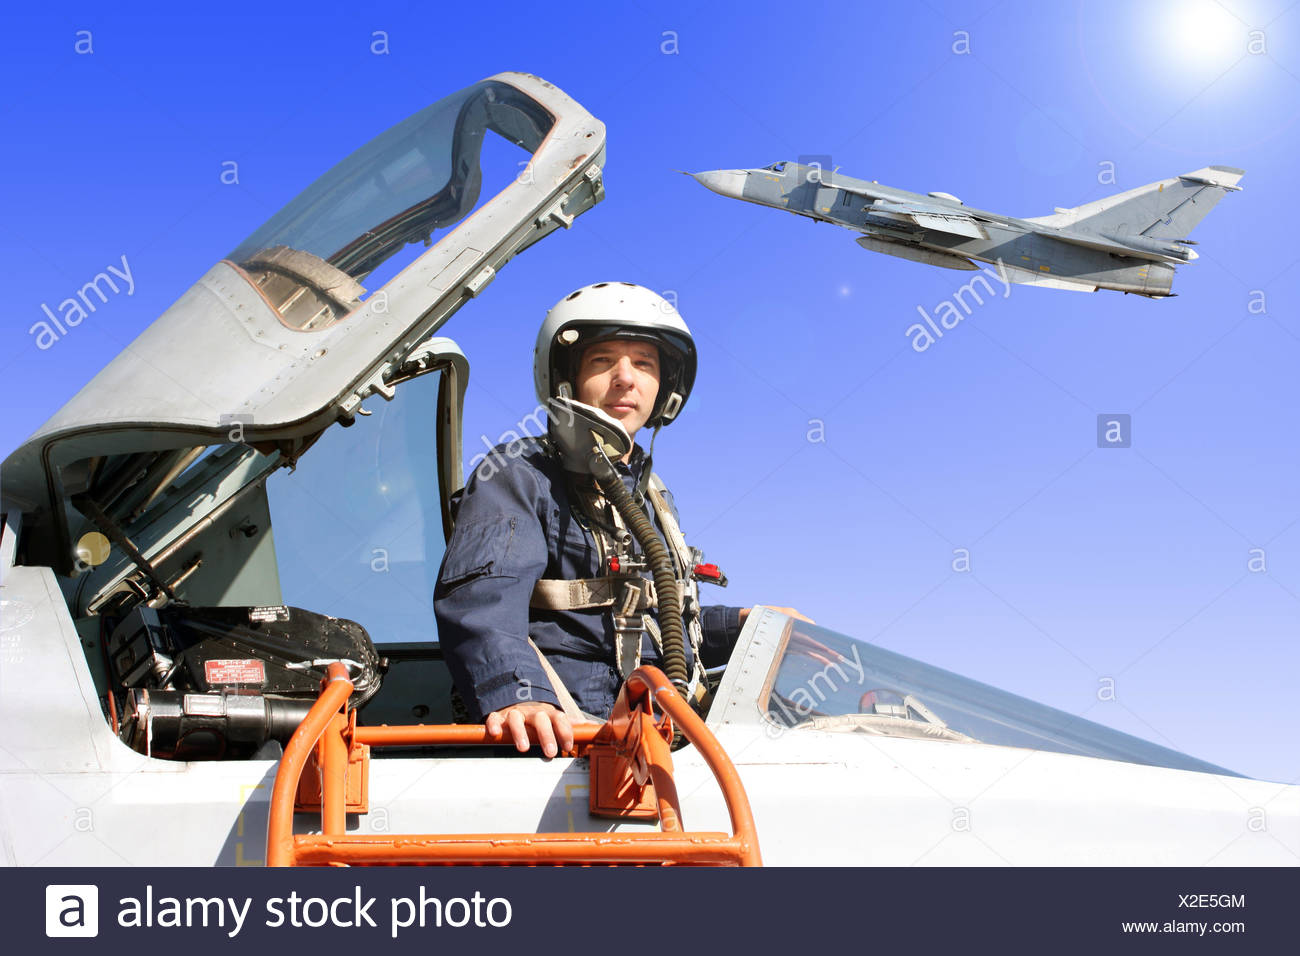 The military pilot in the plane Stock Photo